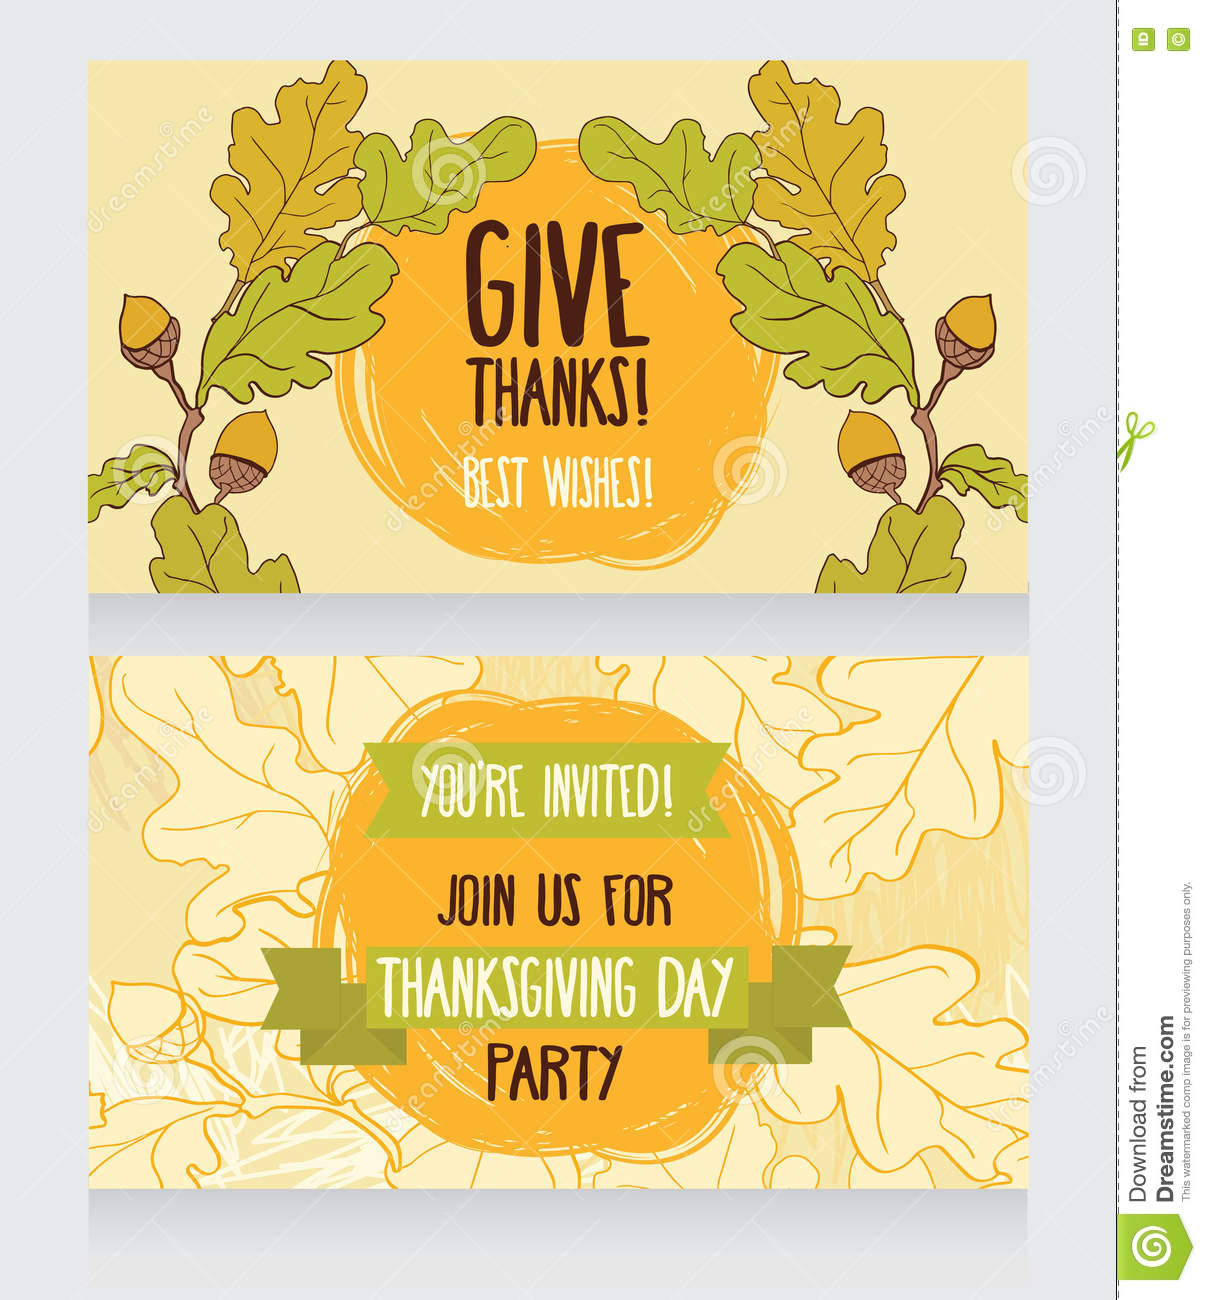 Greeting cards for thanksgiving day stock vector illustration of greeting cards for thanksgiving day cute branch kristyandbryce Images